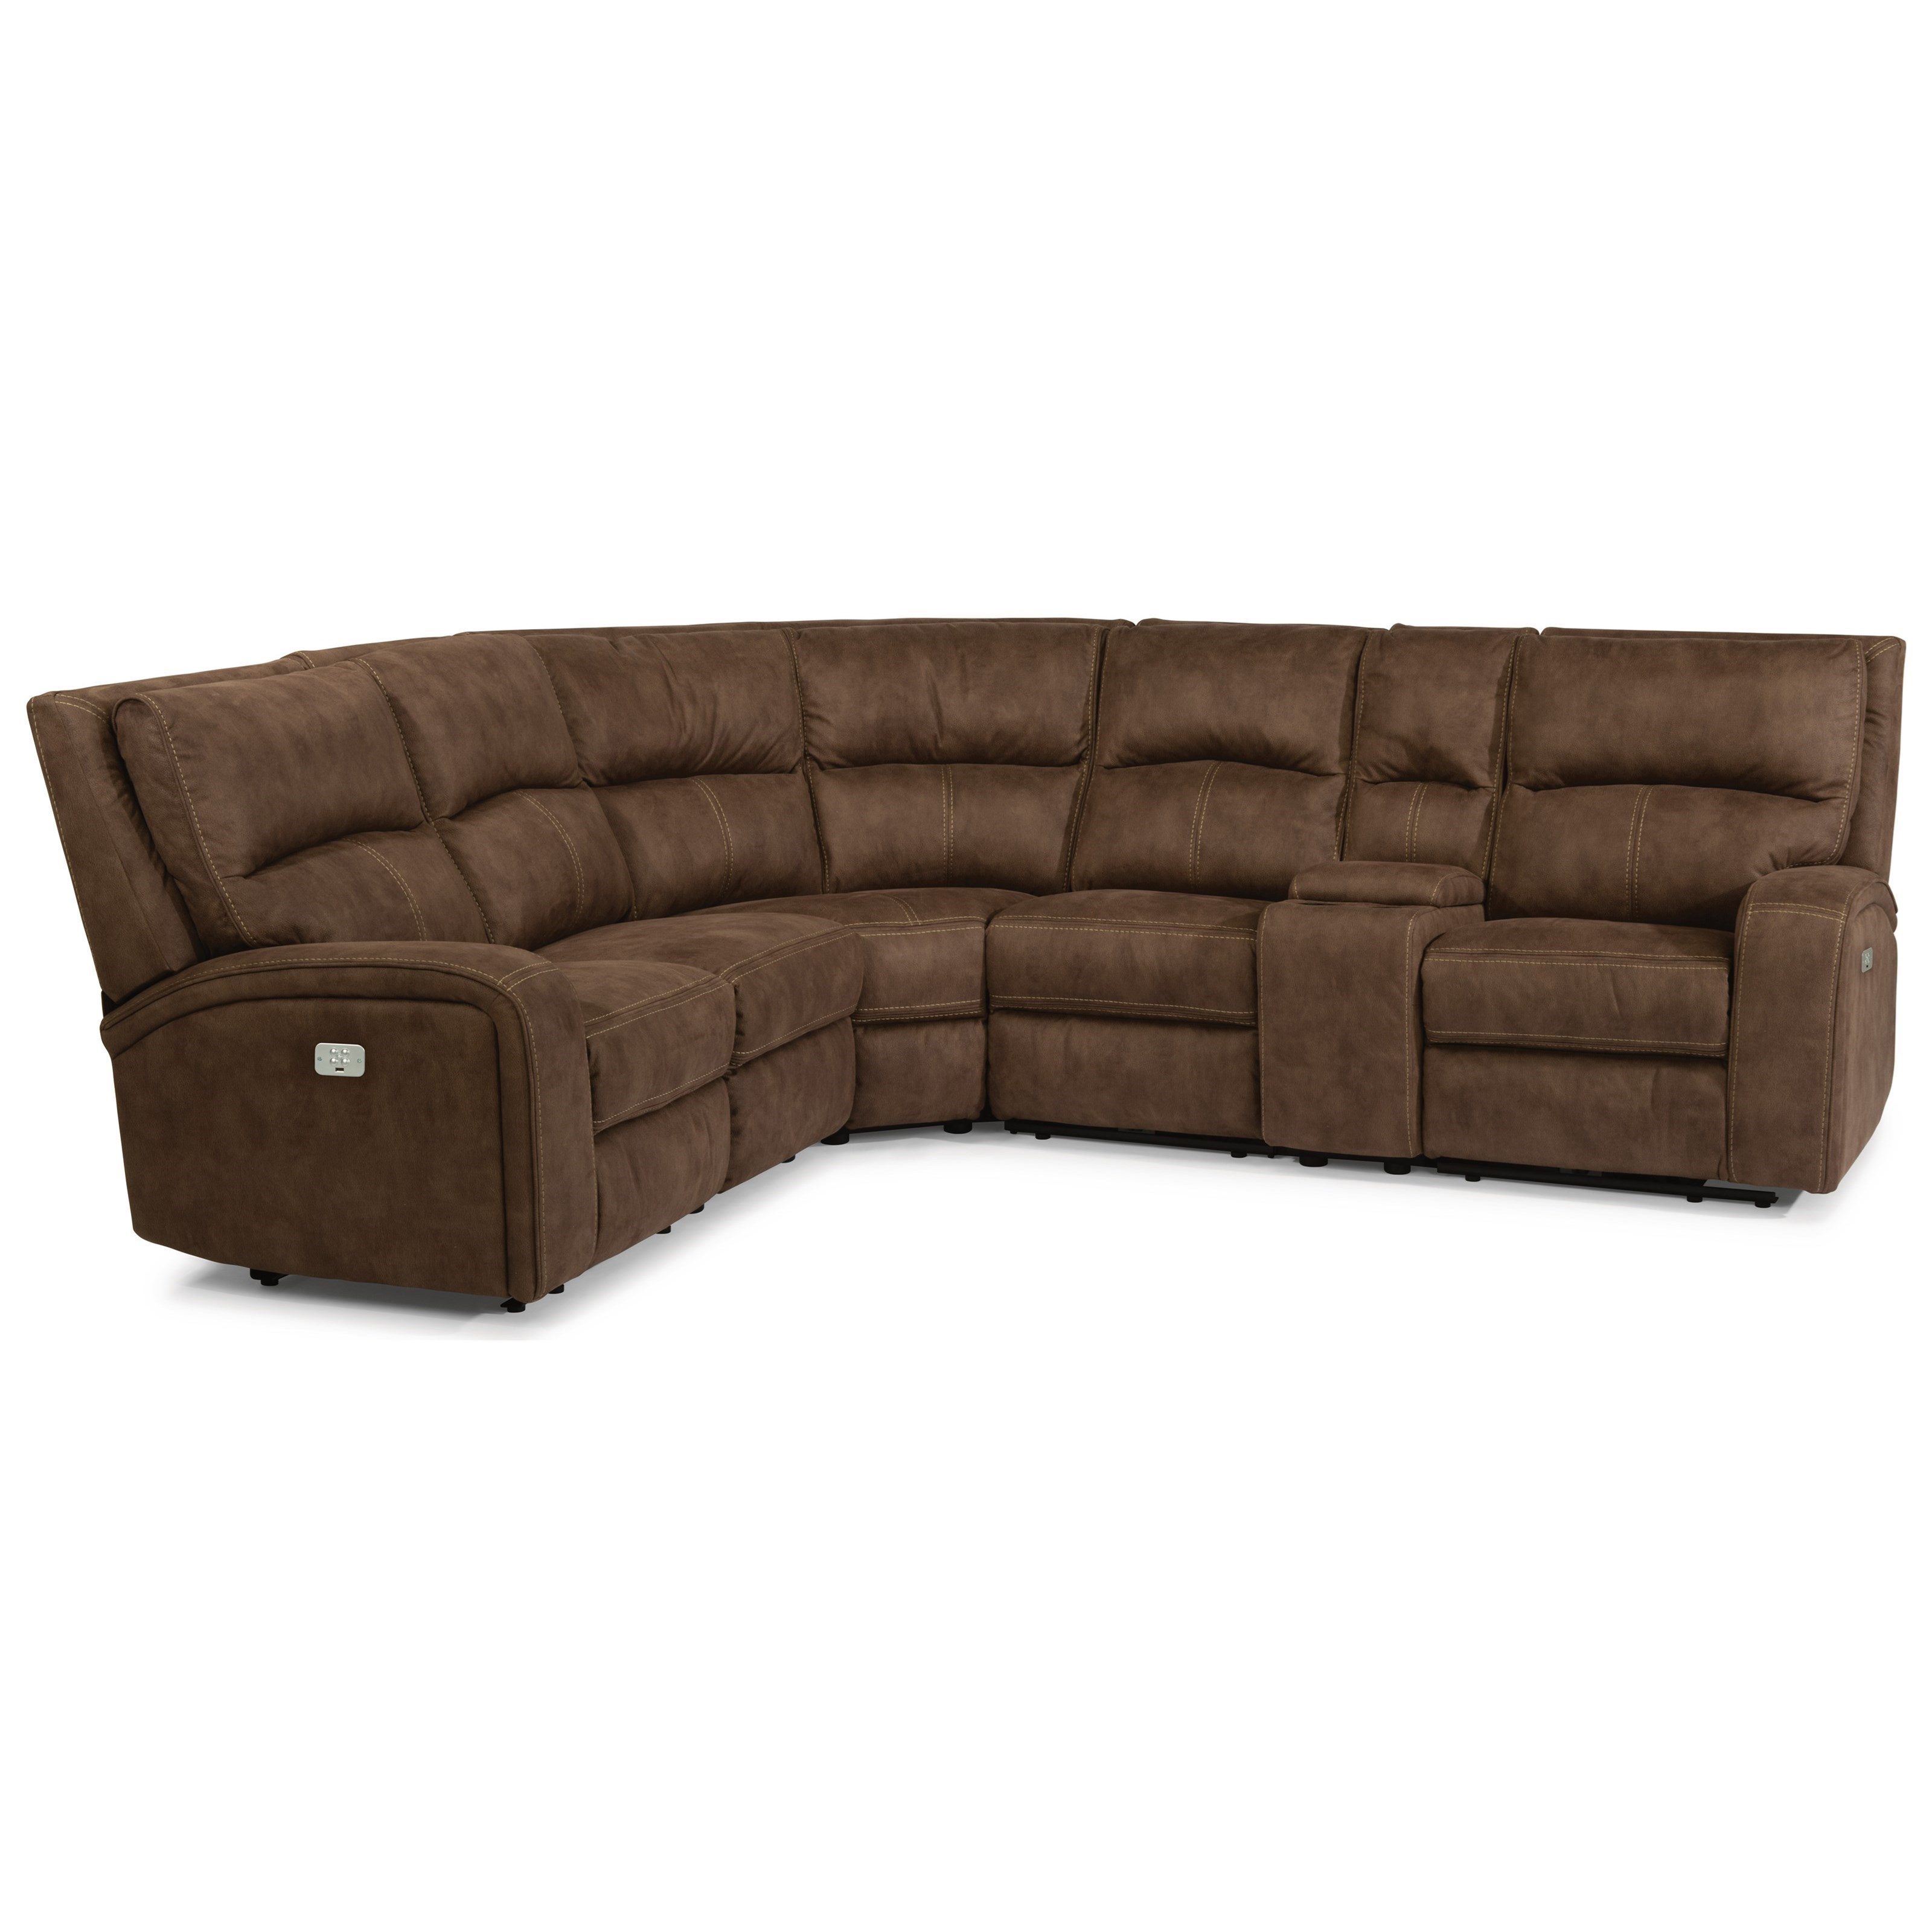 latitudes nirvana contemporary power reclining 5 seat sectional with power headrests usb ports and console by flexsteel at efo furniture outlet